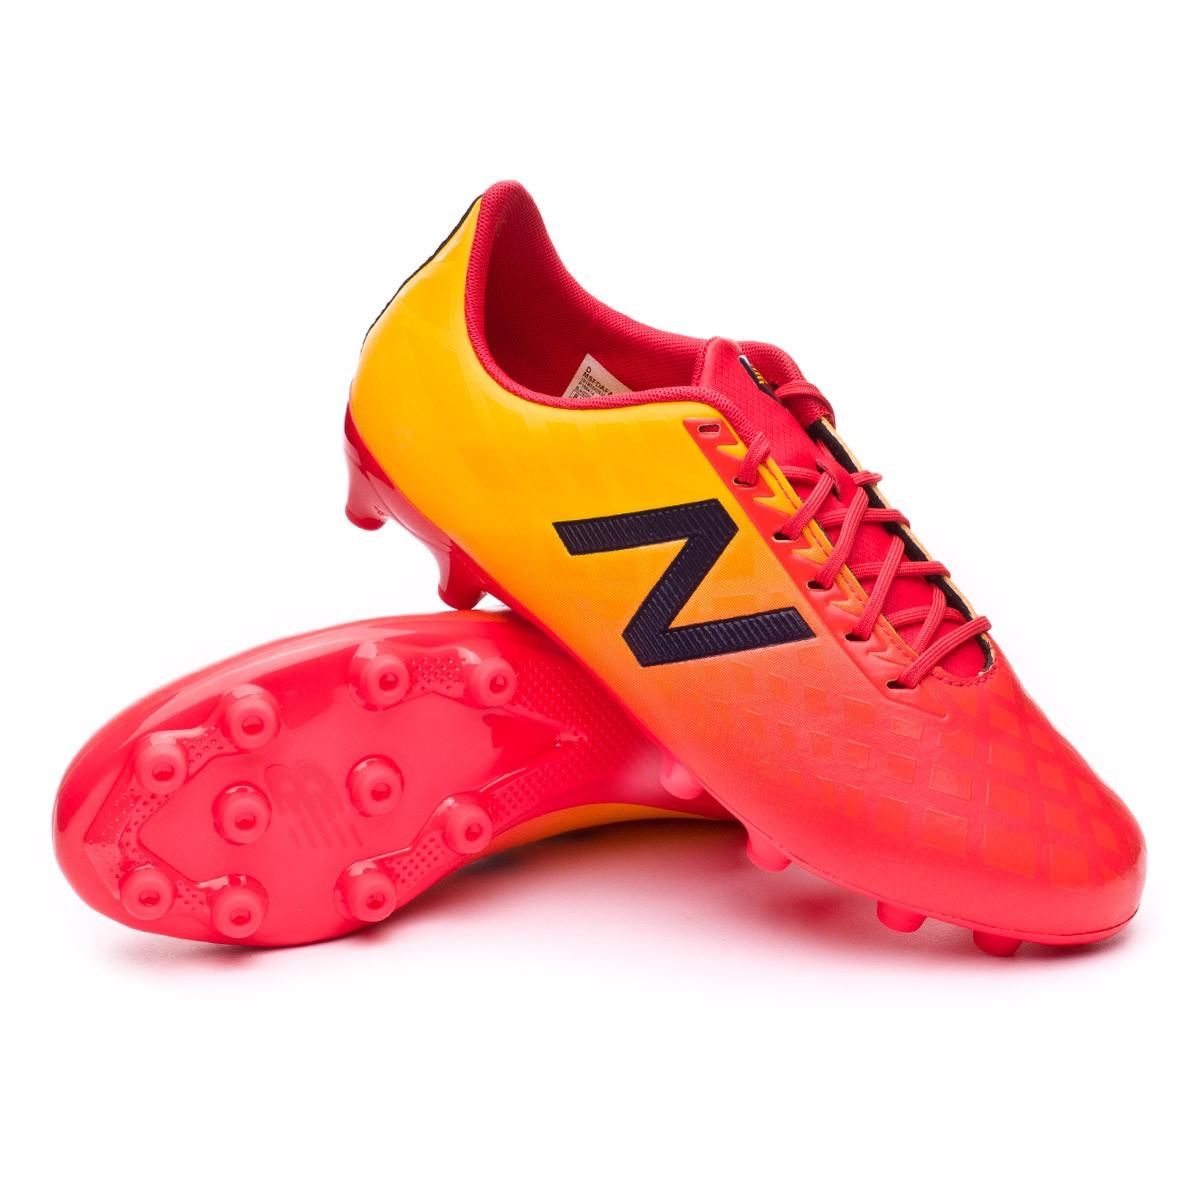 322f95662 Football Boots New Balance Furon 4.0 Dispatch AG Flame - Football ...